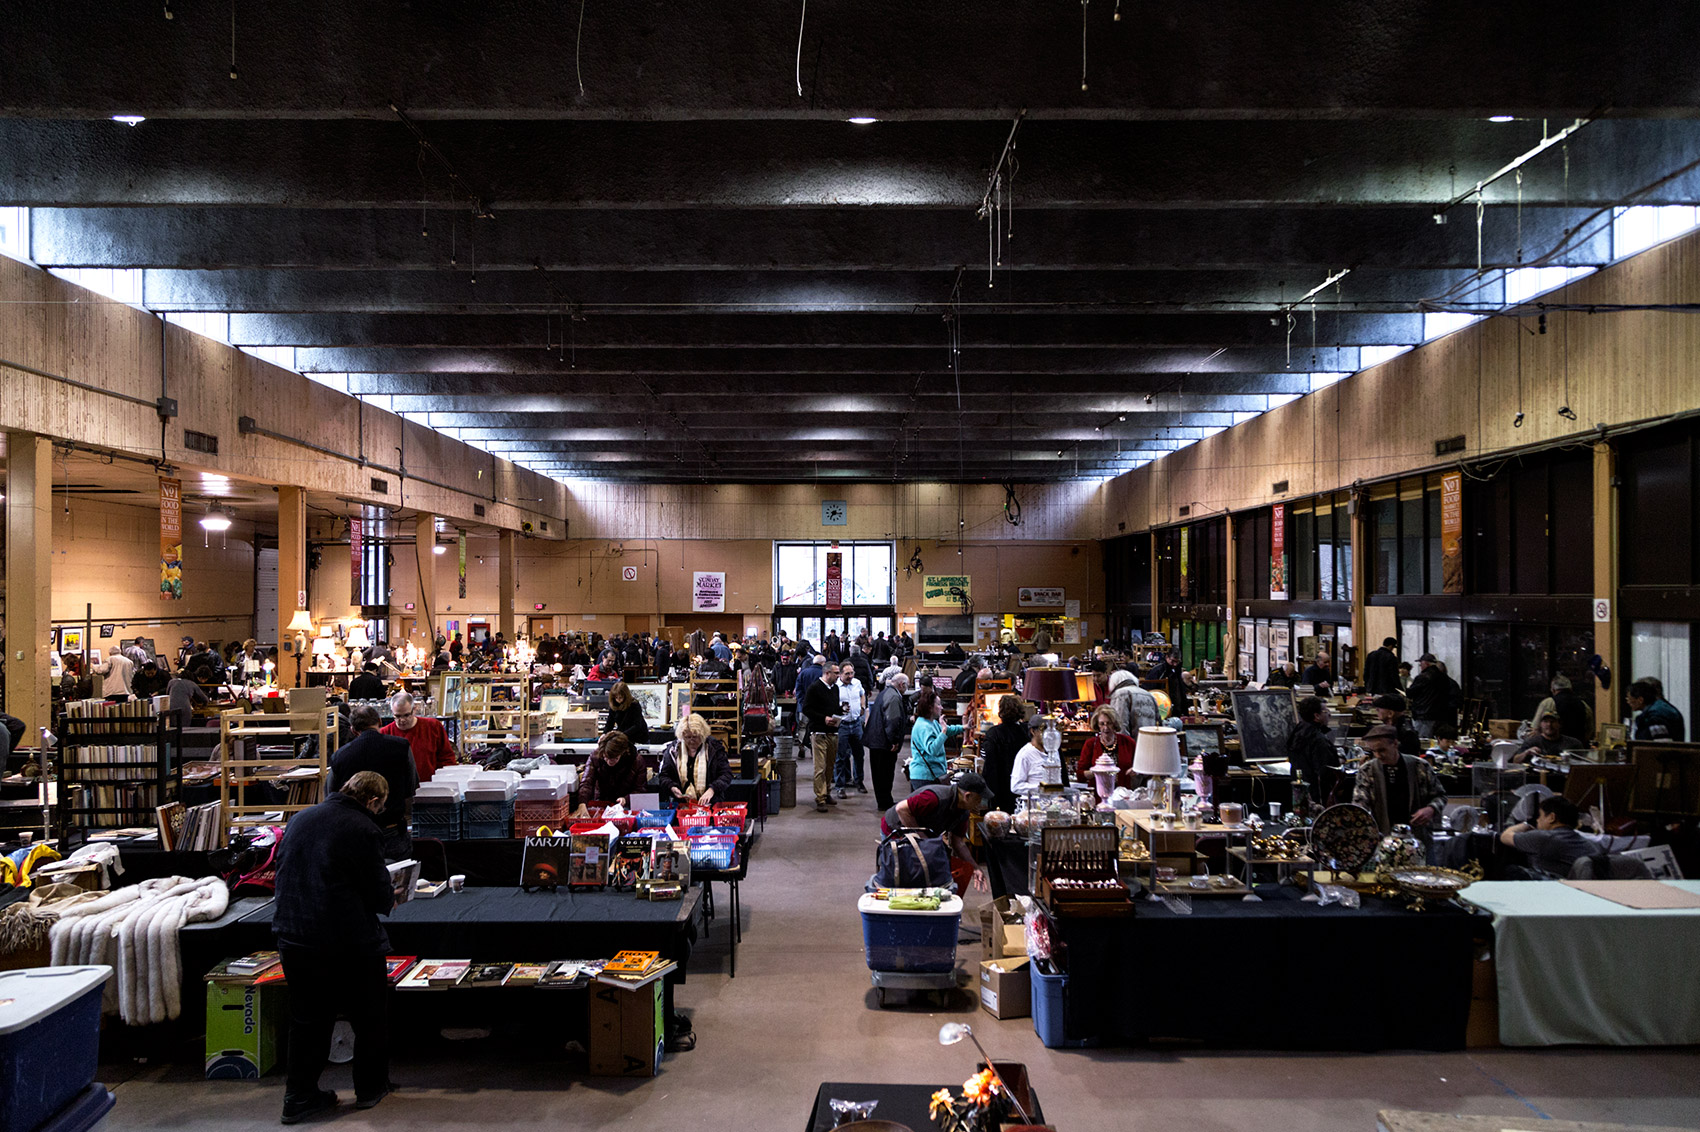 20150426. A busy 7AM at the antique market during the last days